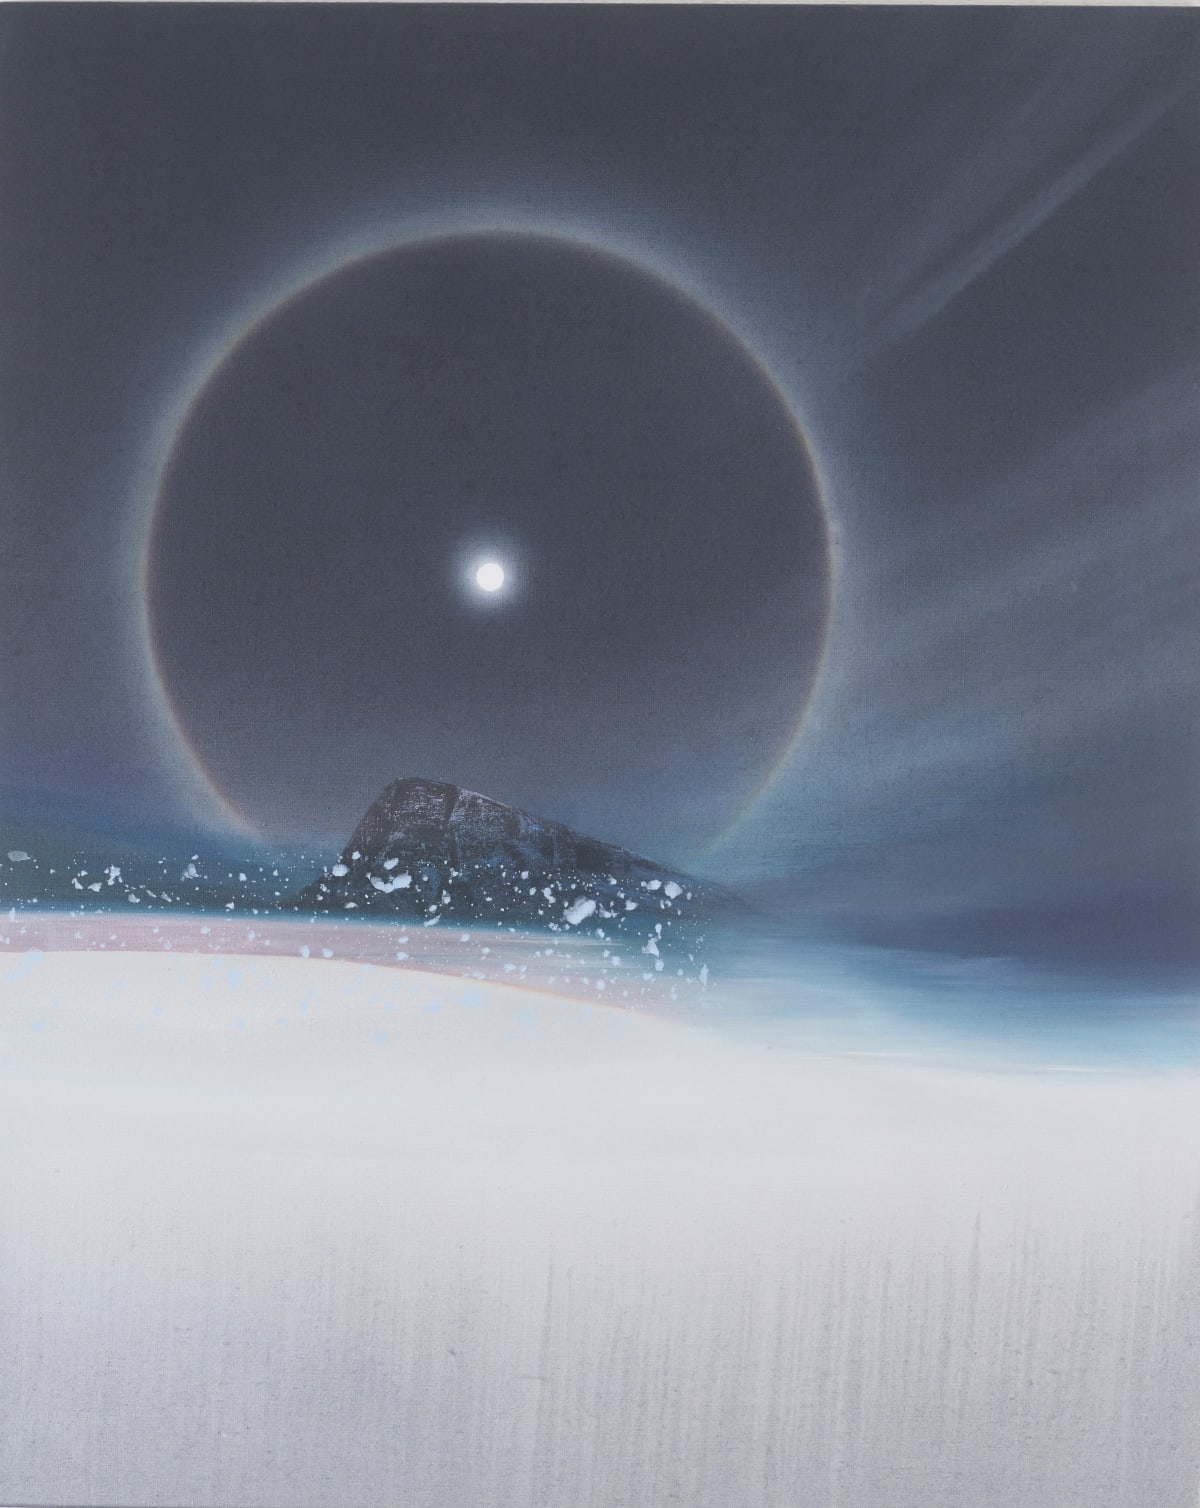 Nicholas Jones, A Cold Beauty: Lunar Halo, 2018